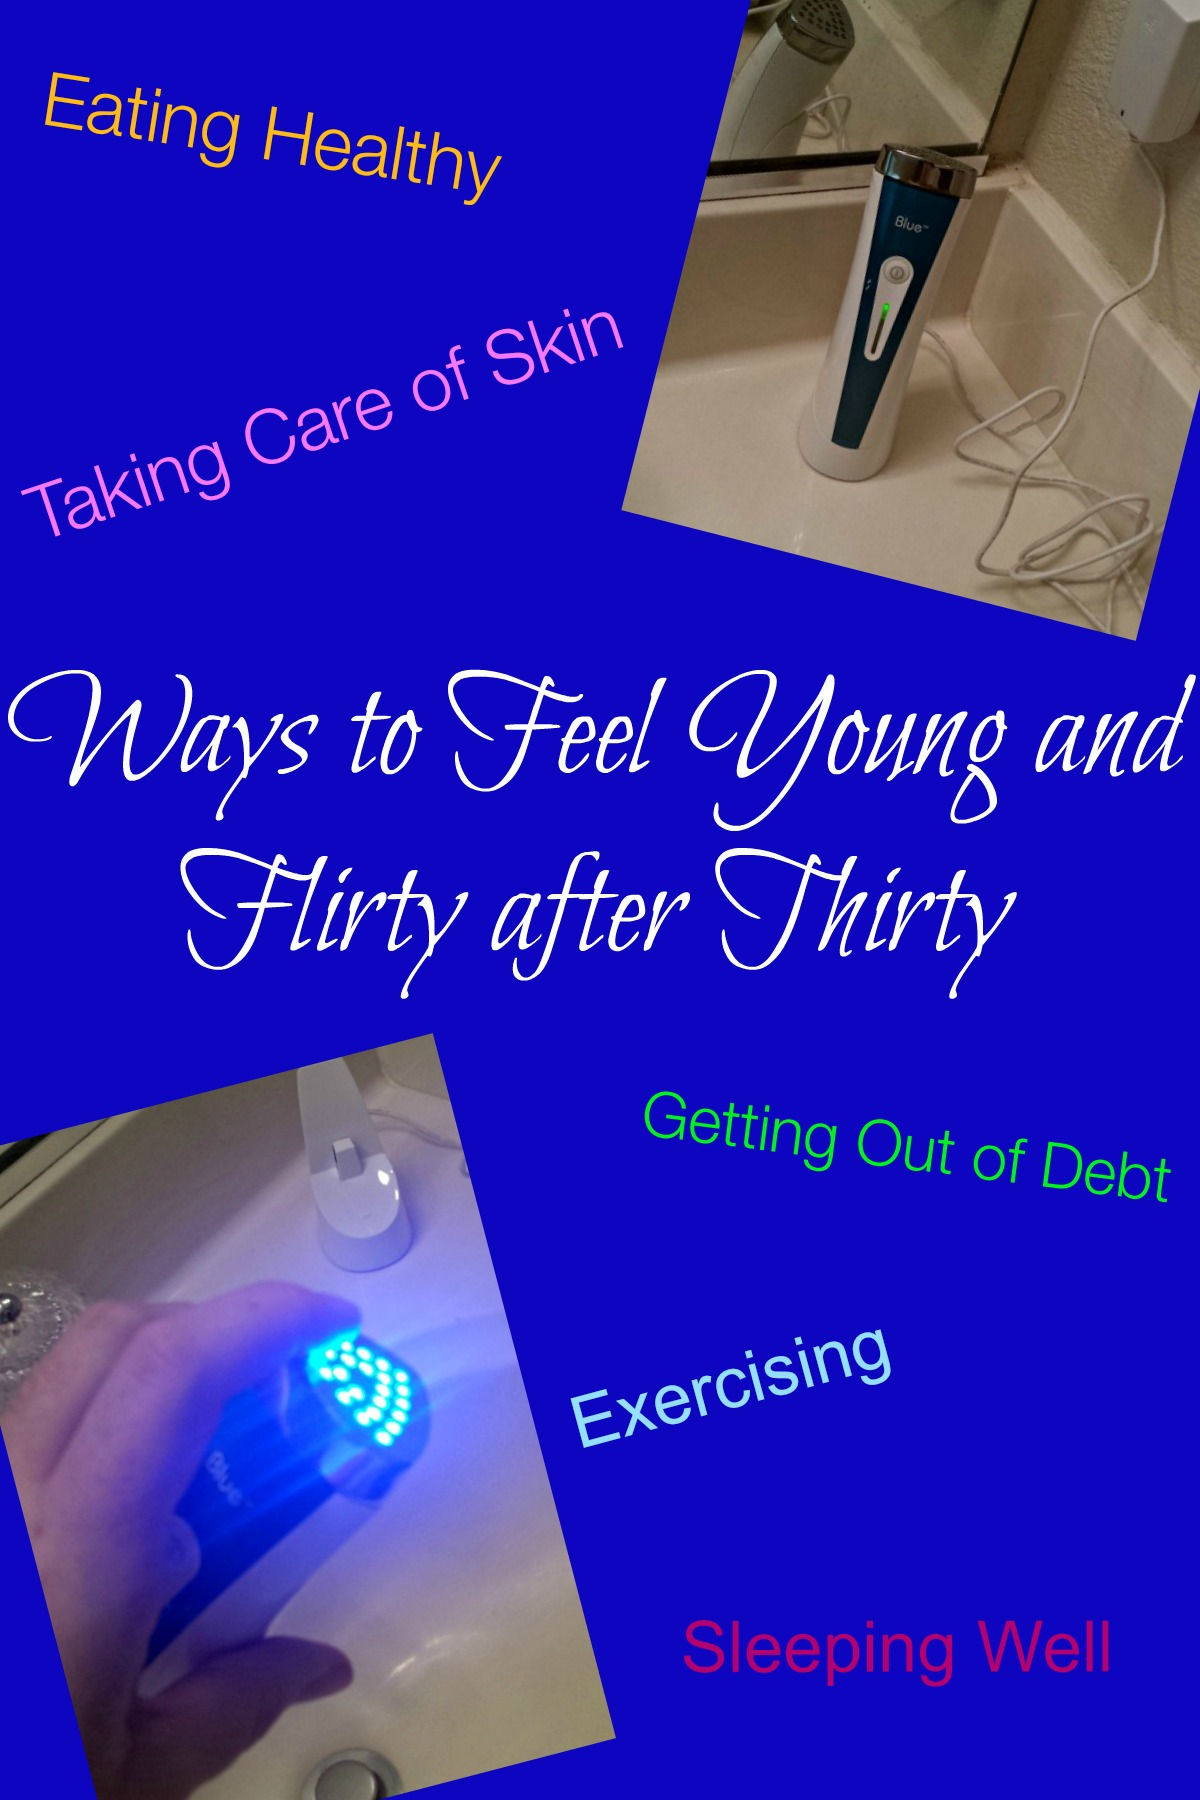 Ways to Feel Young and Flirty After Turning Thirty